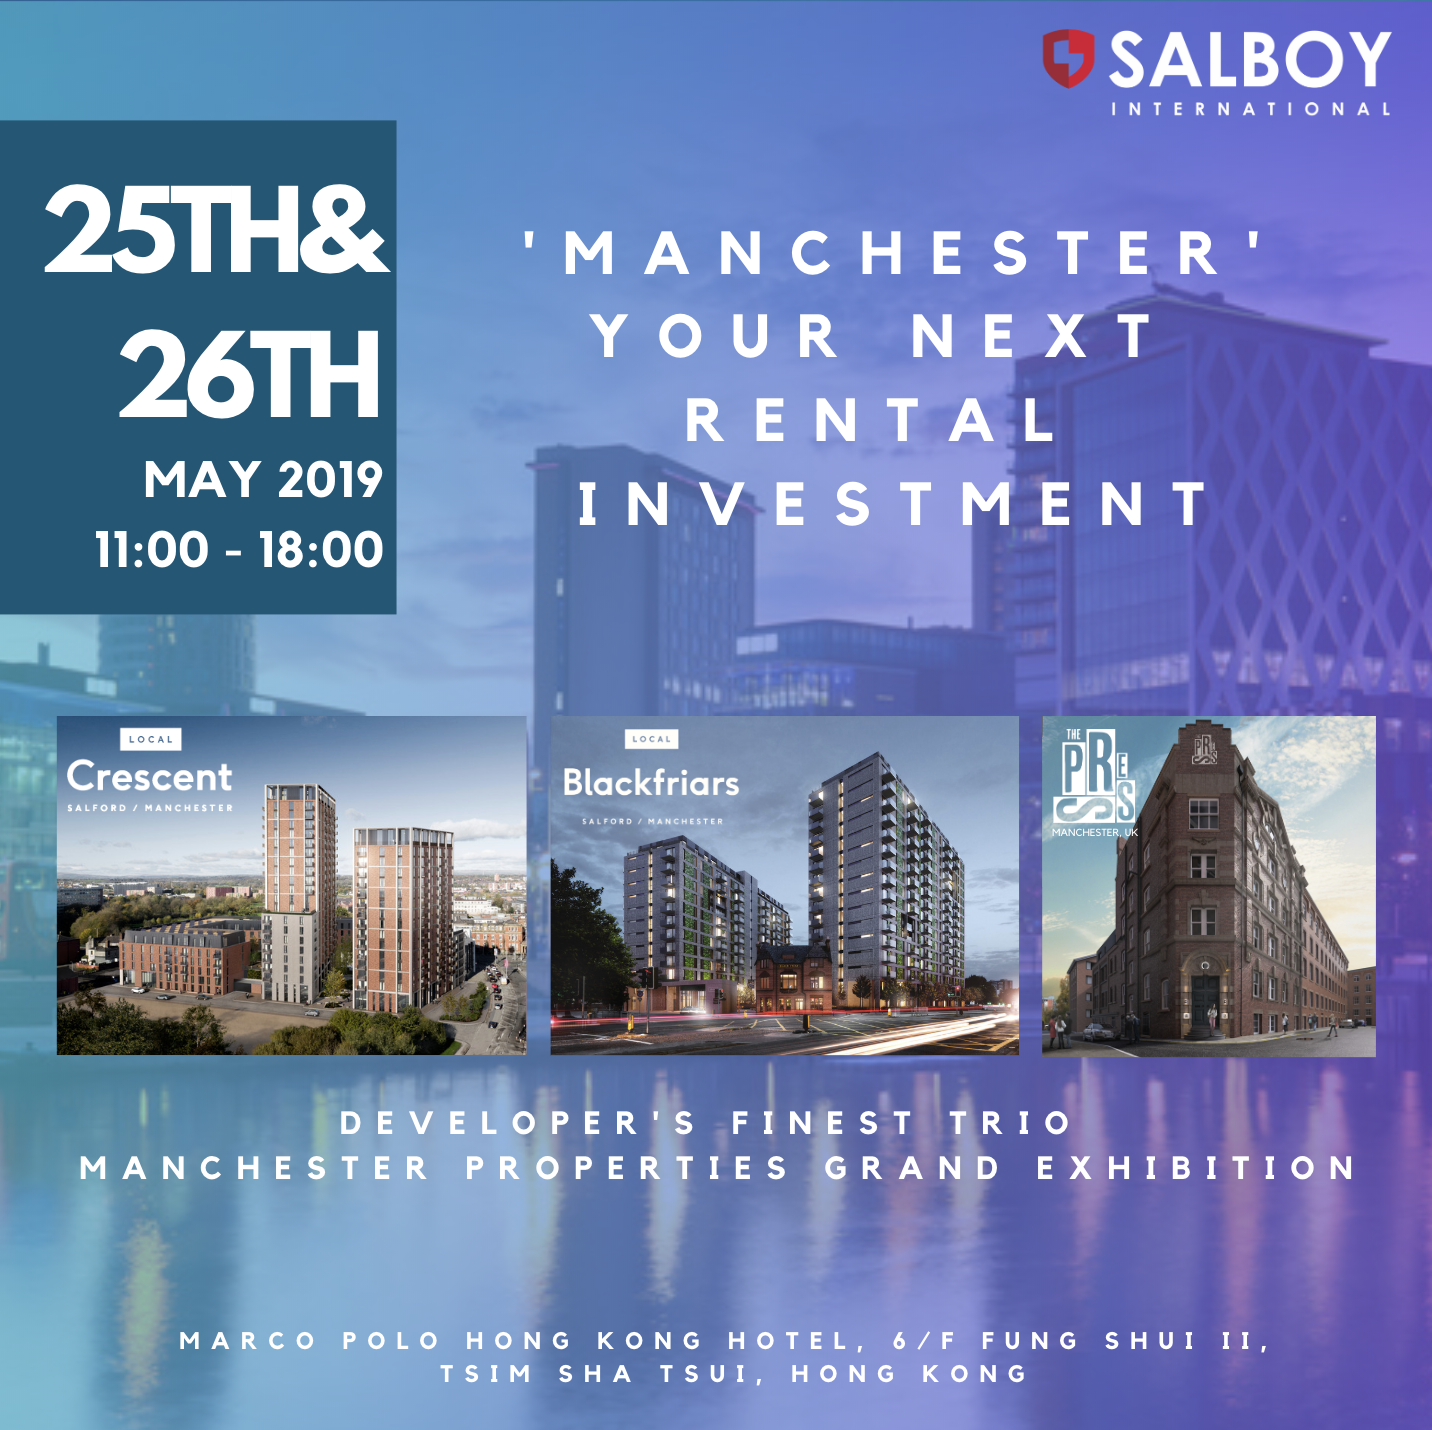 [Developer Exclusive] 'Manchester' Your Next Rental Investment - Salboy Property Exhibition, HONG KONG